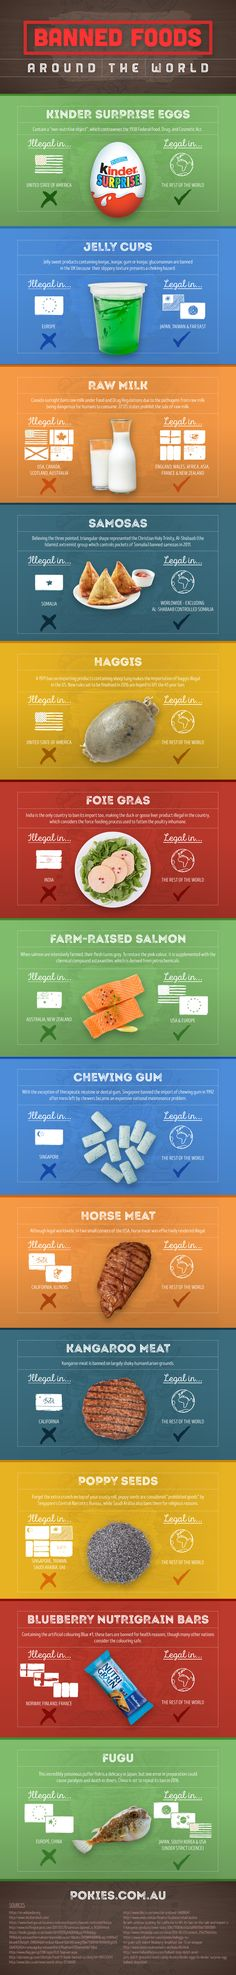 Did you know these 13 types of food are banned in some countries? (includes…